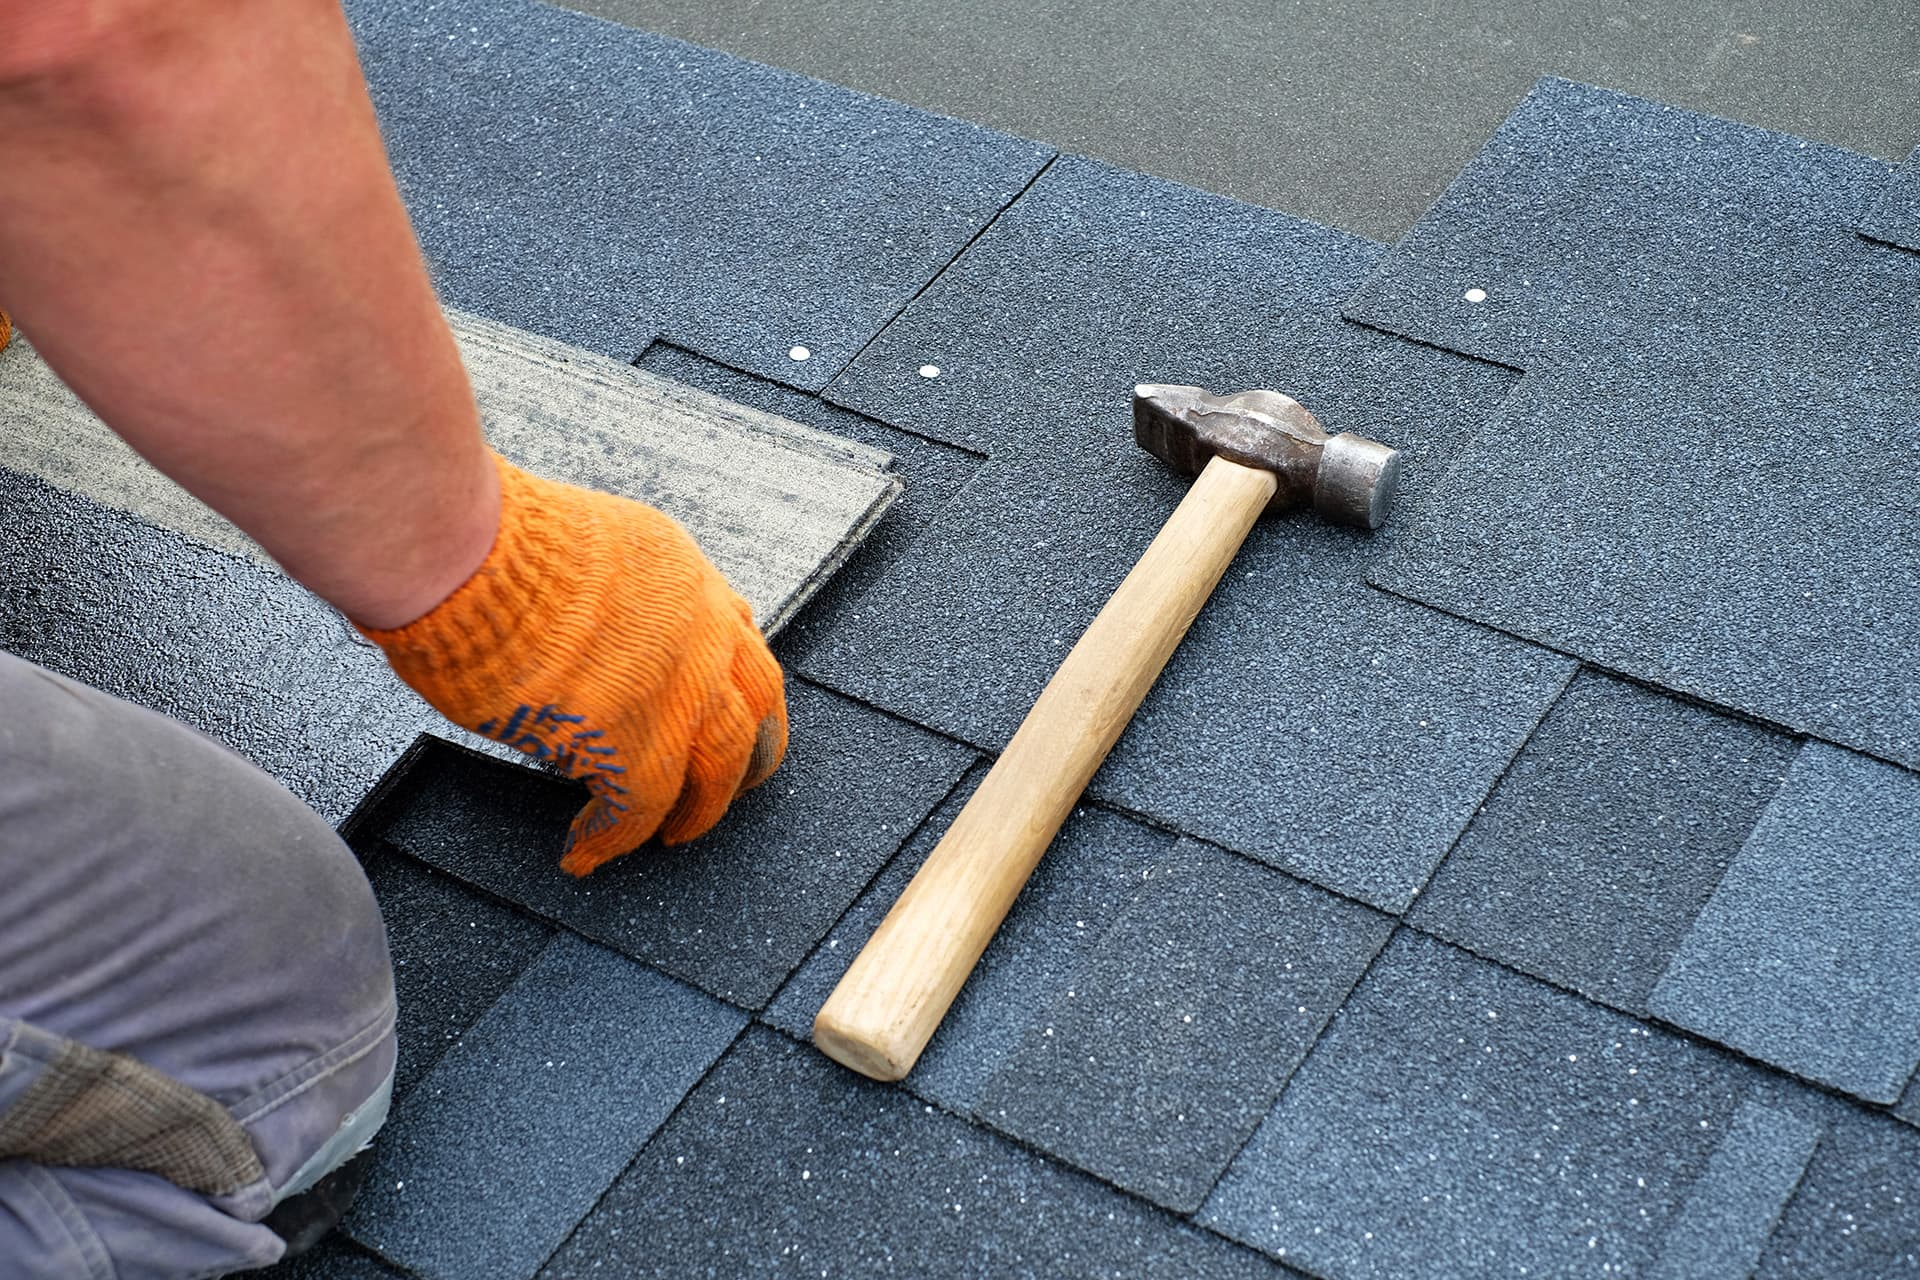 Person with roofing contractor insurance placing shingles on a roof next to a hammer